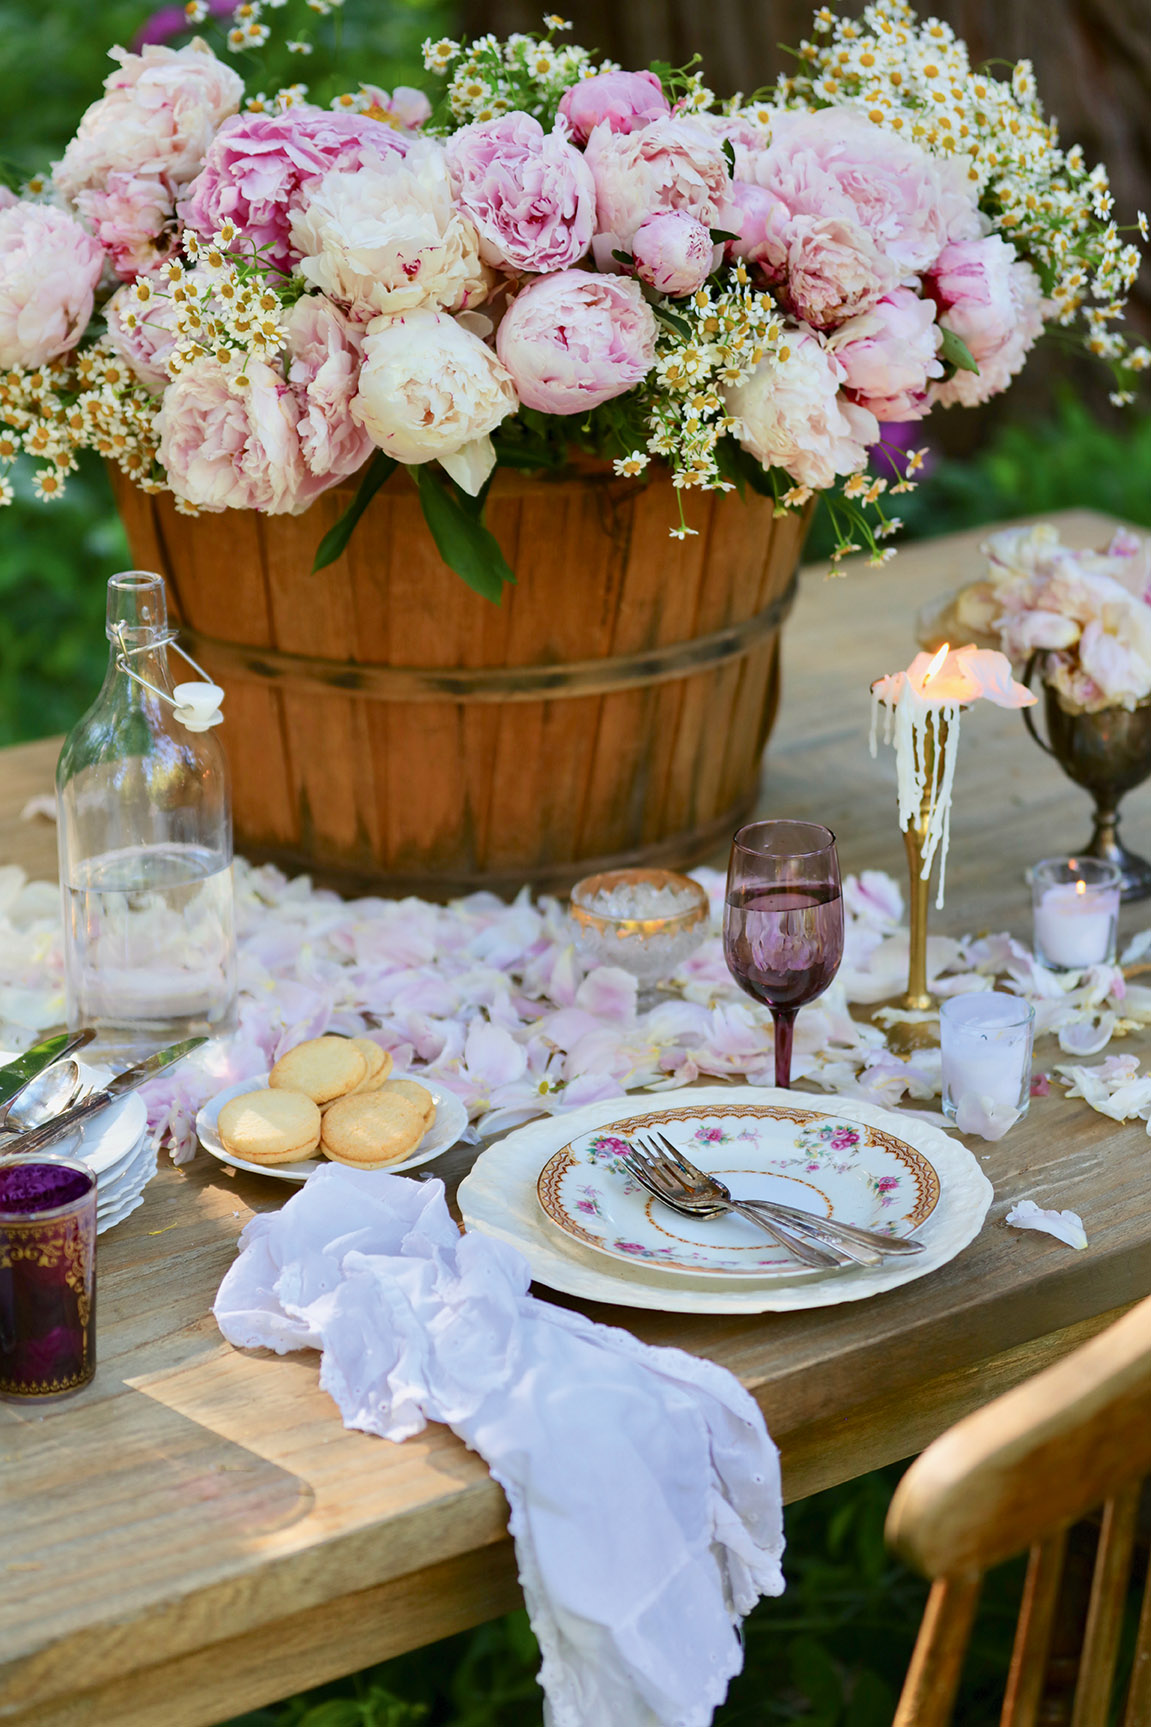 romantic flower petals table setting Photograph from French Country Cottage Inspired Gatherings by Courtney Allison. Reprinted by permission of Gibbs Smith Publishing.